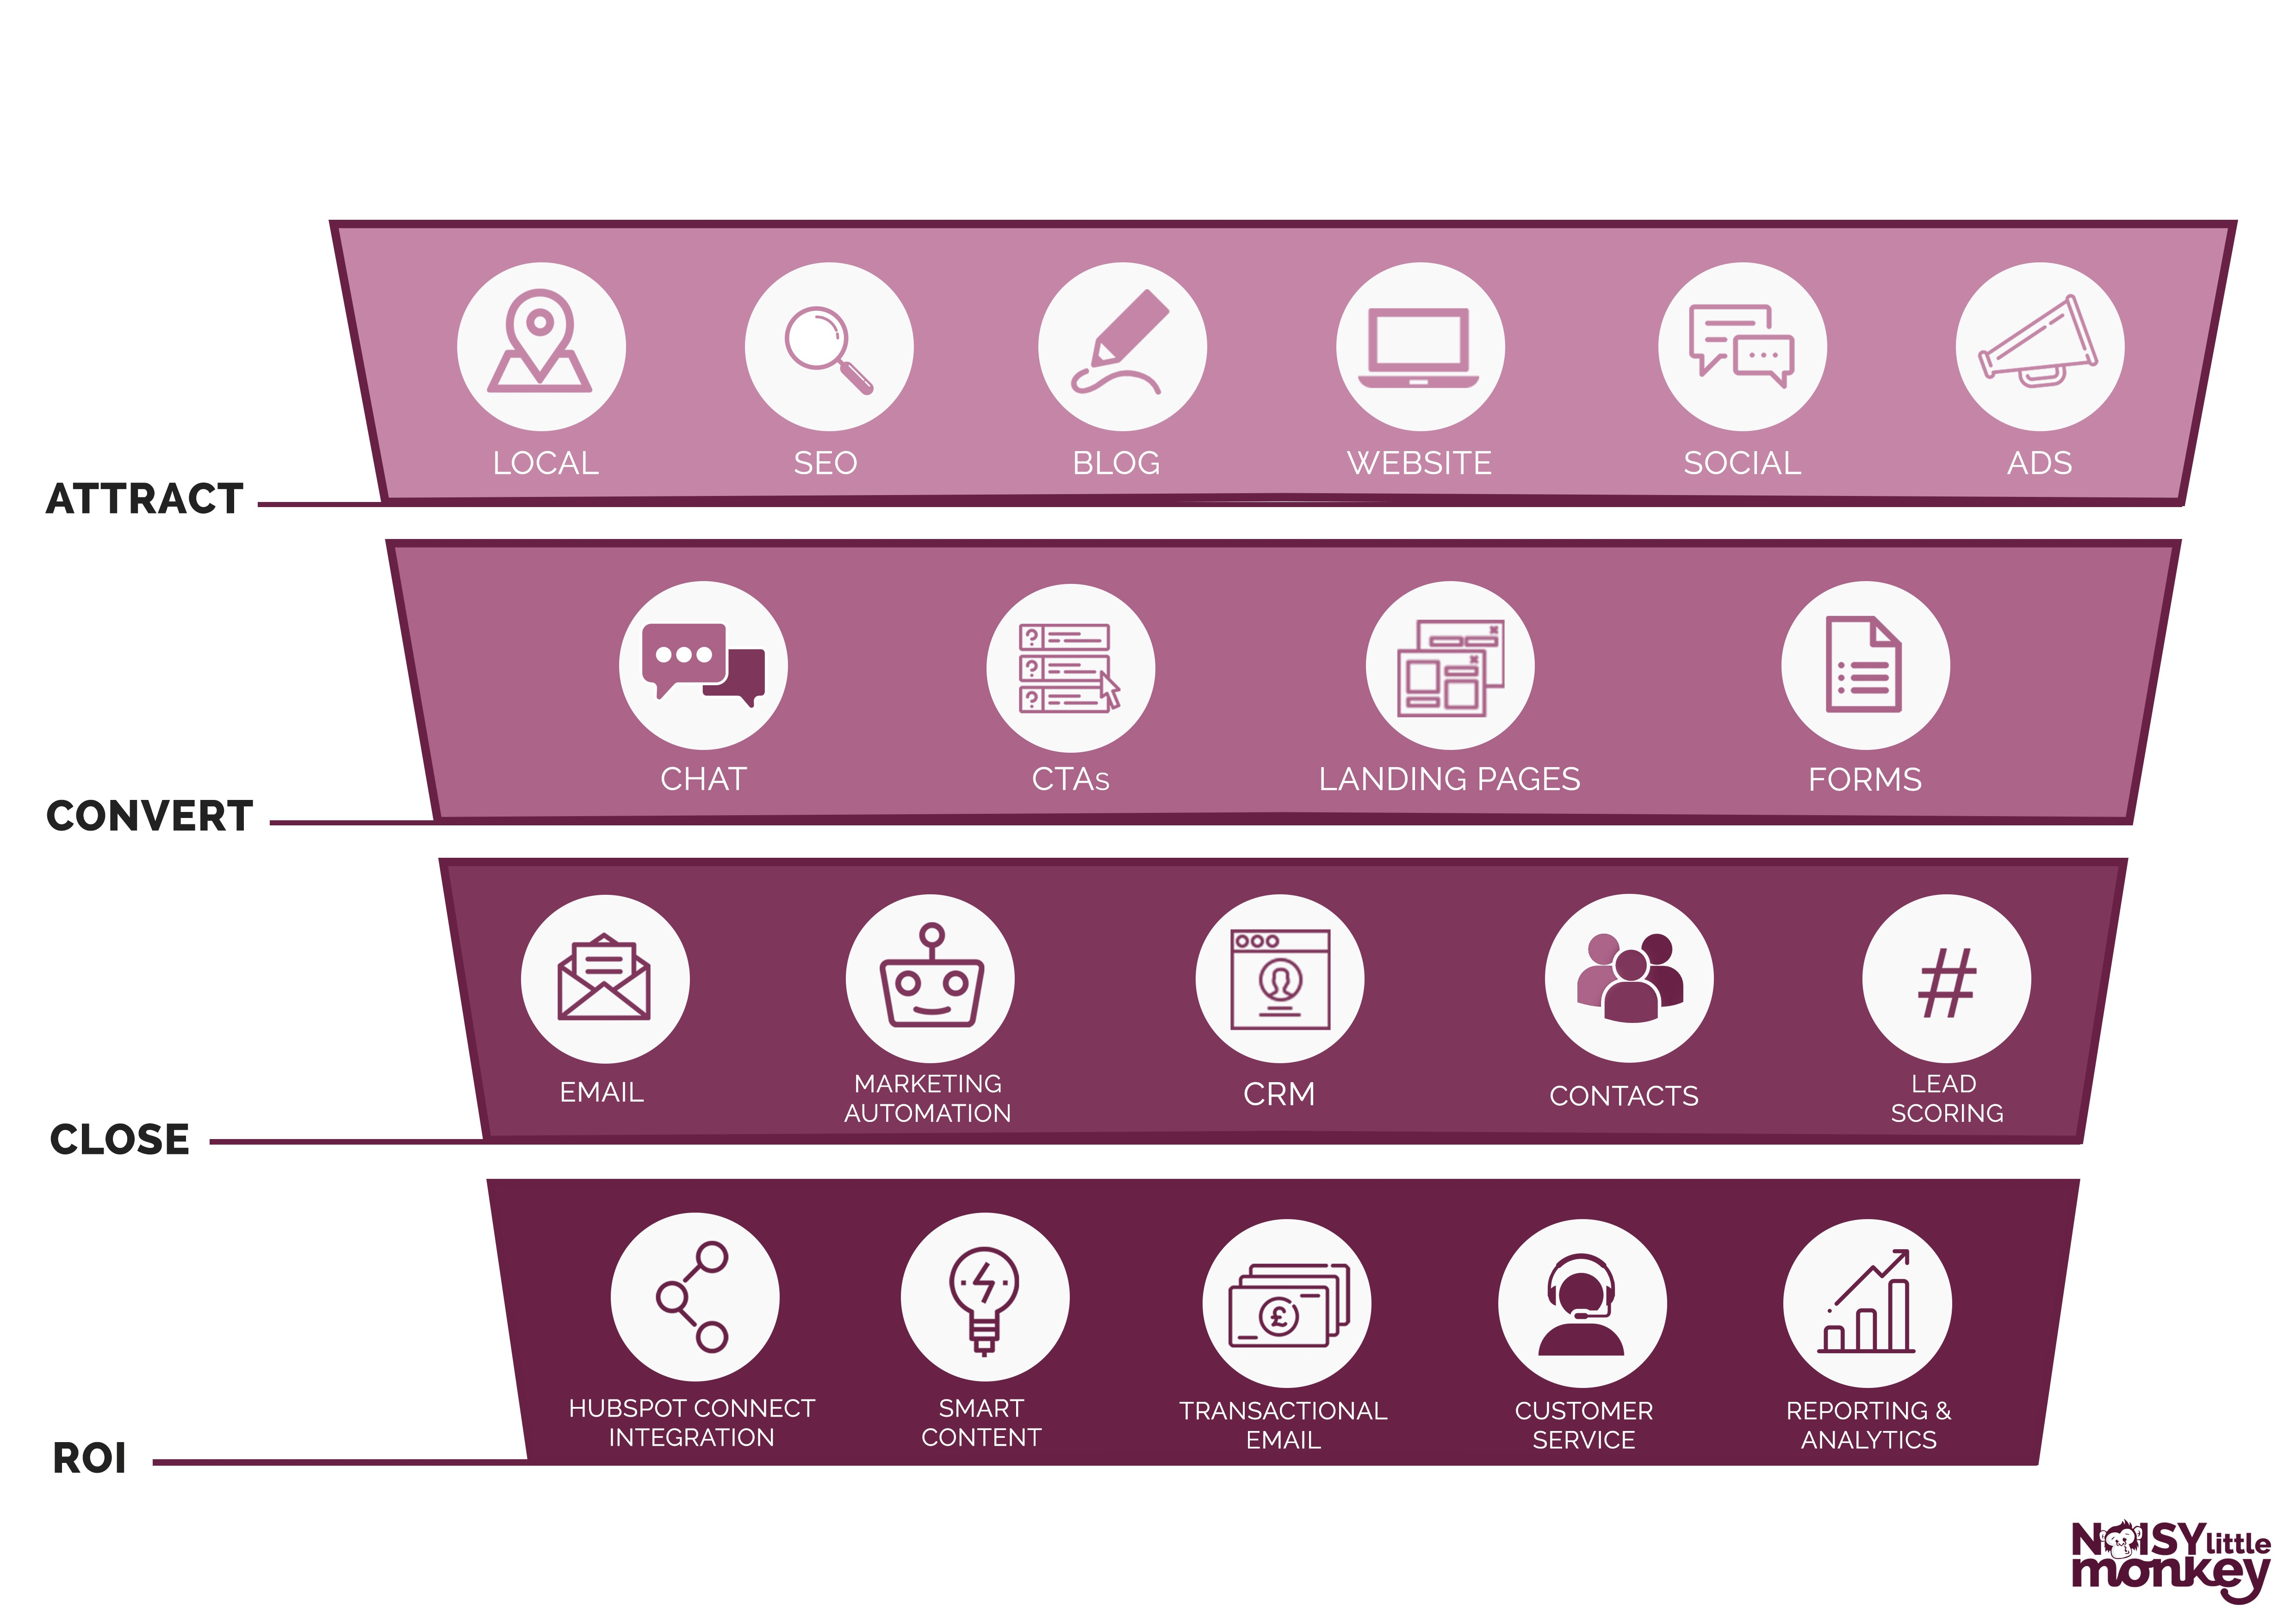 Image depicting the Attract, Convert, Close, ROI, stages of the sales and marketing funnel